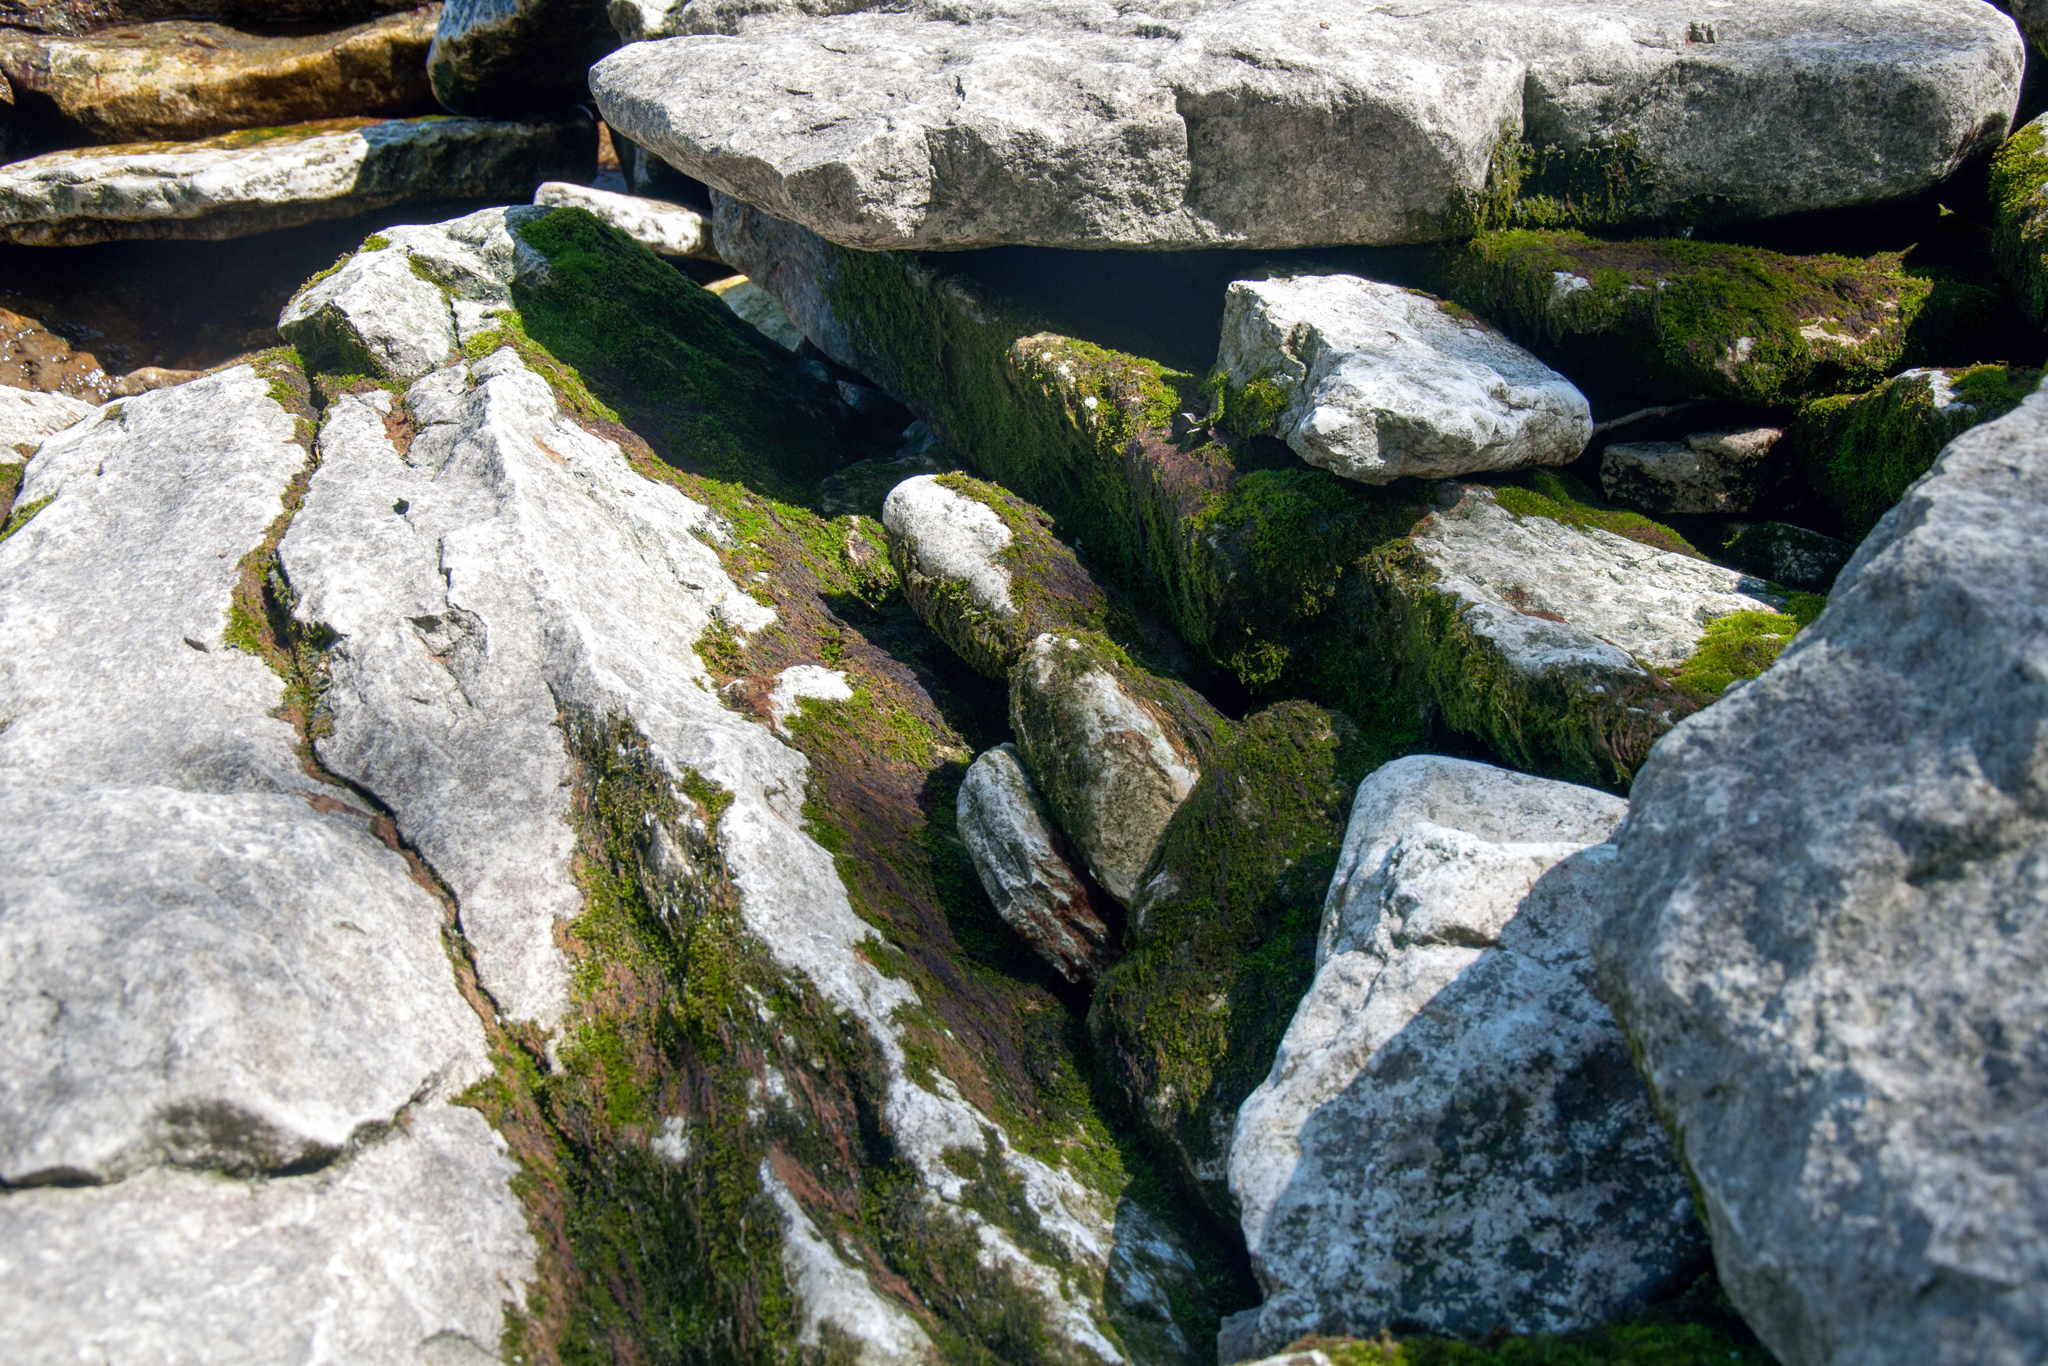 Rocks at Marblehead (May 2010)